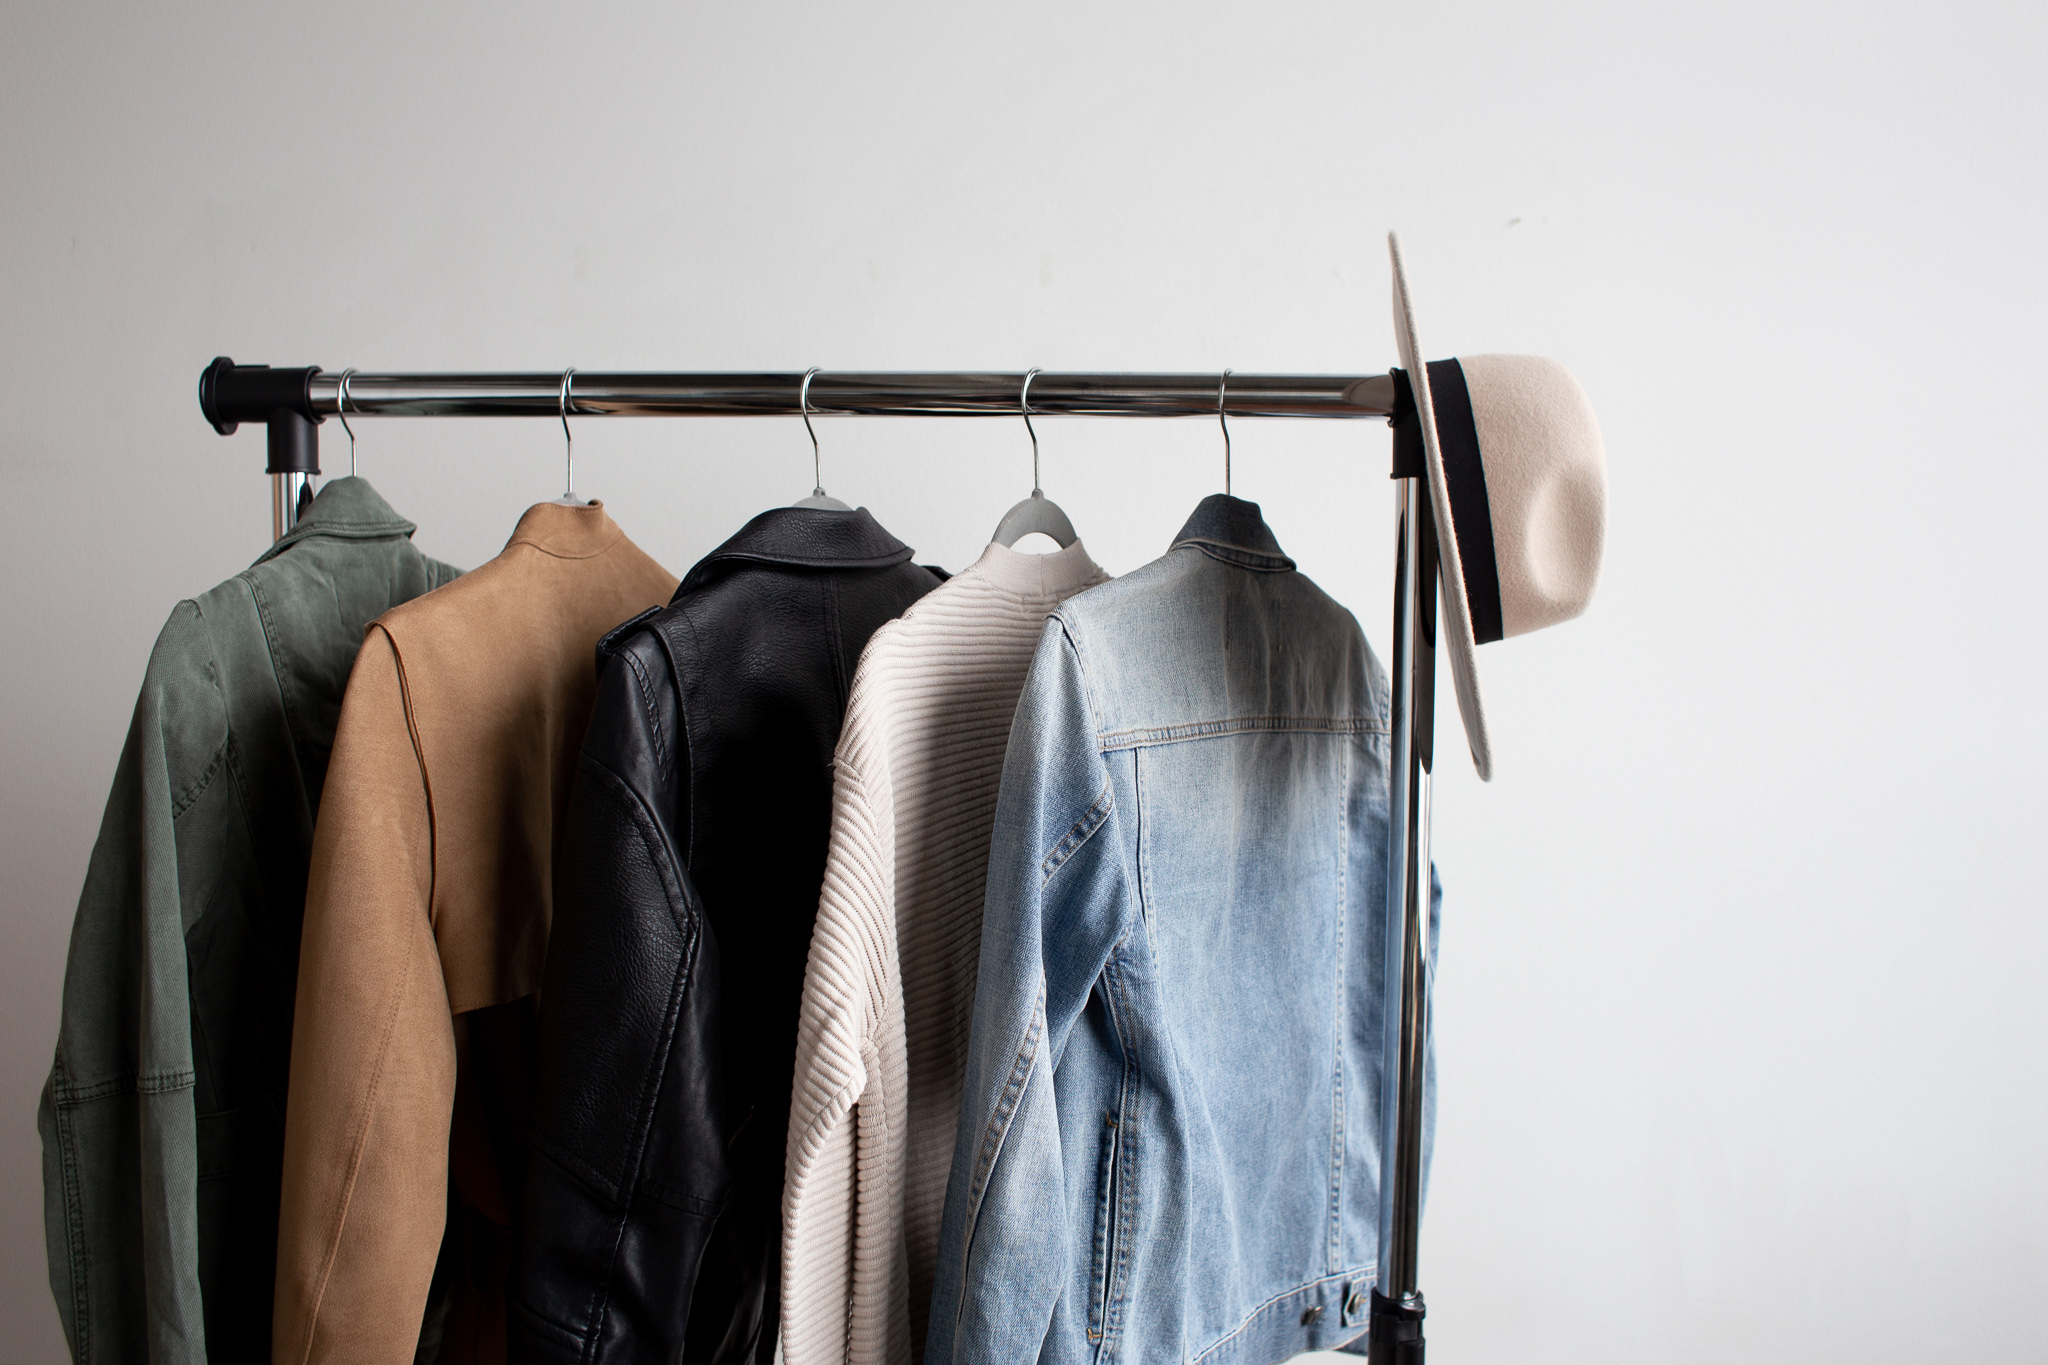 Sweaters, leather jackets and a hat hanging on a modern clothes rod.